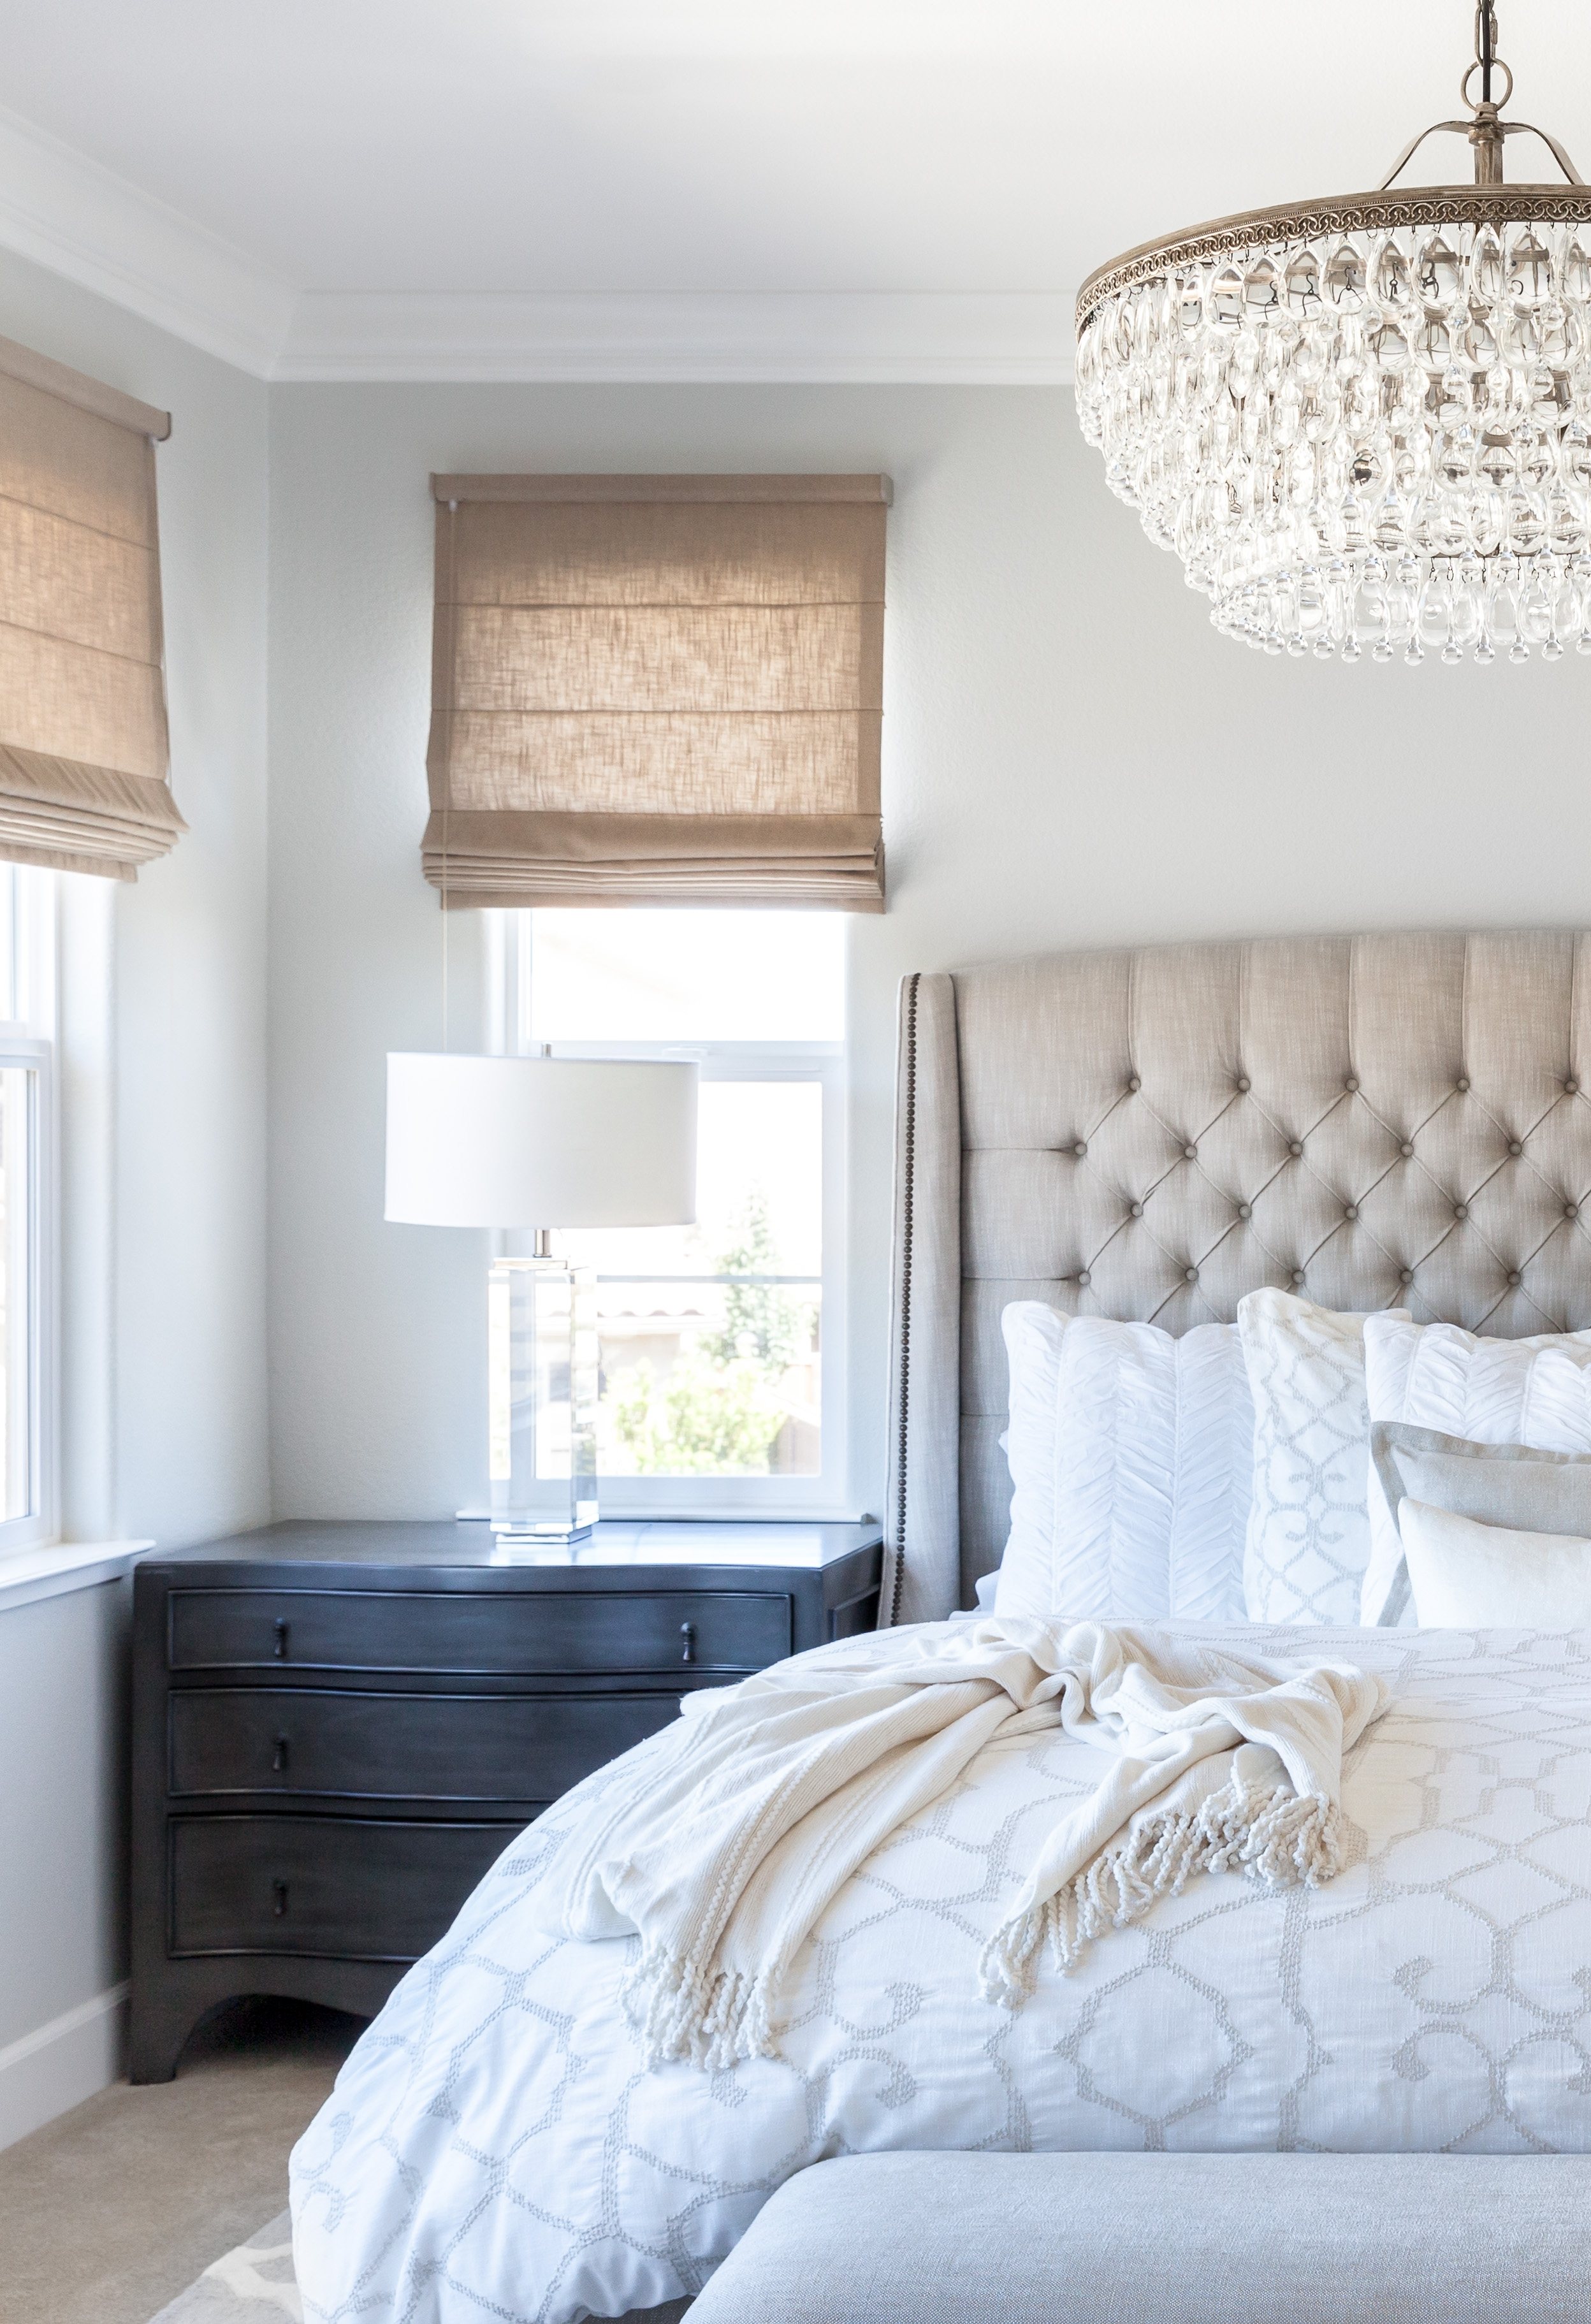 Best And Newest Bedroom Lamps For Nightstands – Houzz Design Ideas – Rogersville Intended For Chandelier Night Stand Lamps (View 20 of 20)